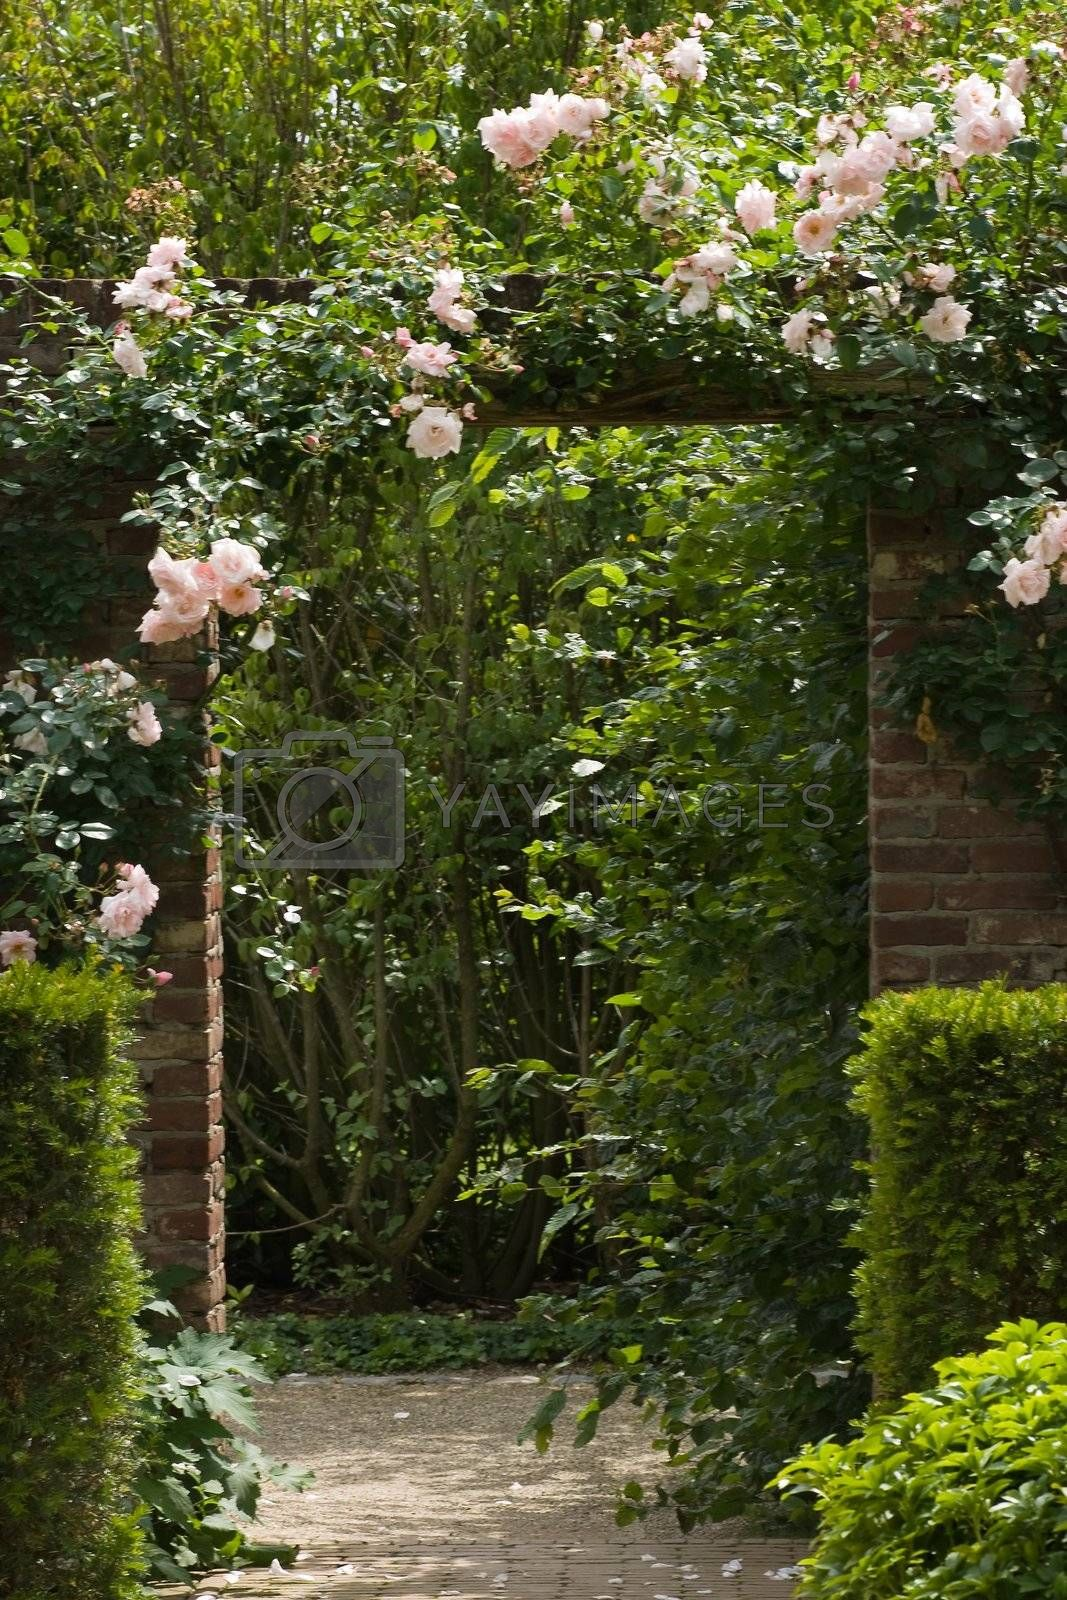 Royalty free image of Gate in stone wall in garden with roses by Colette